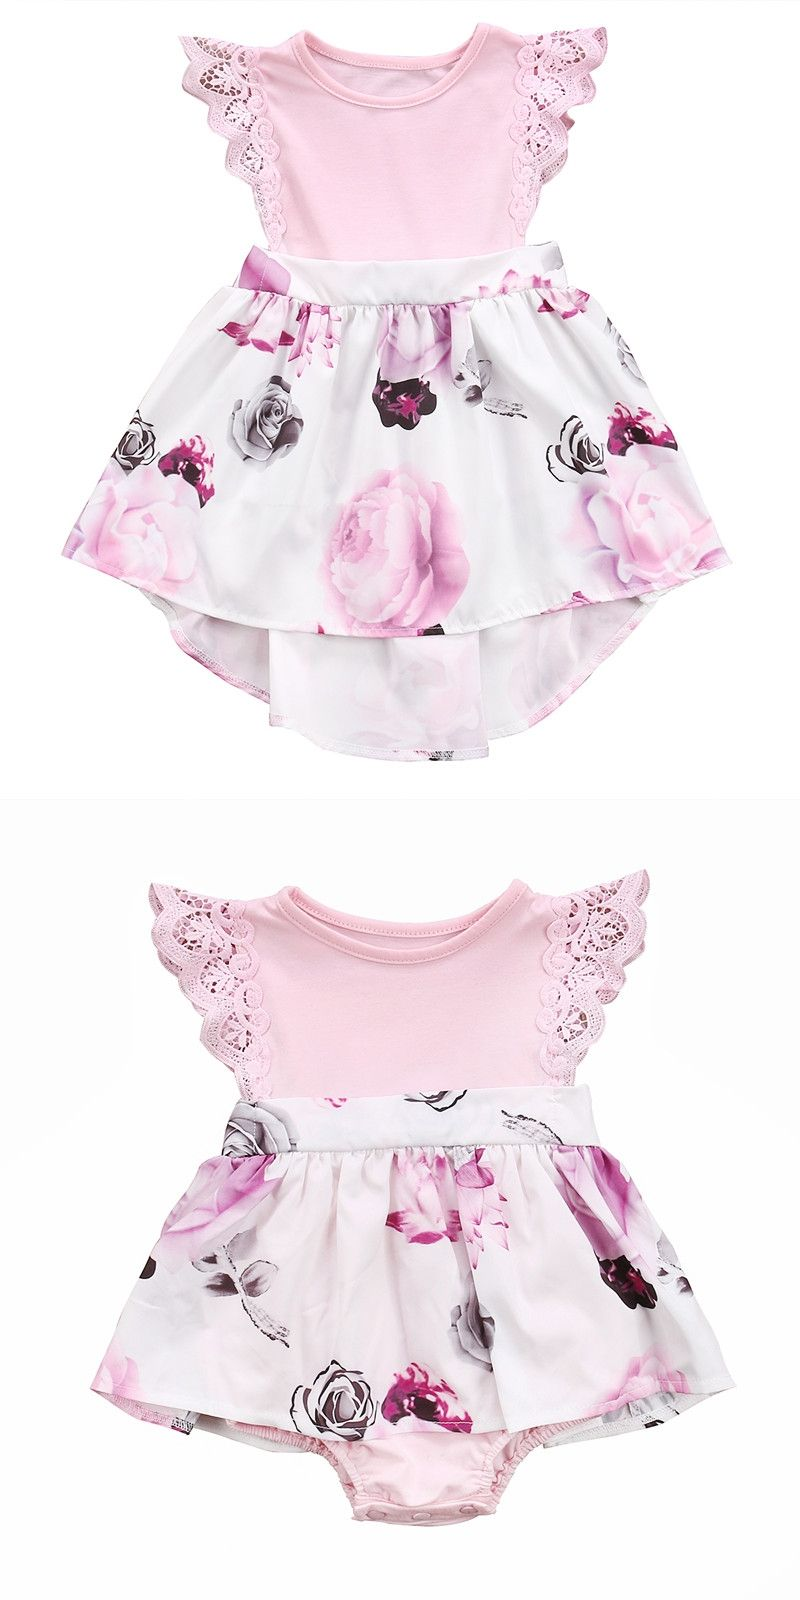 6df33cce4f77 Family Sister Floral Matching Clothing Newborn Baby girls Kids lace Summer  Floral Romper  Dress clothes outfits